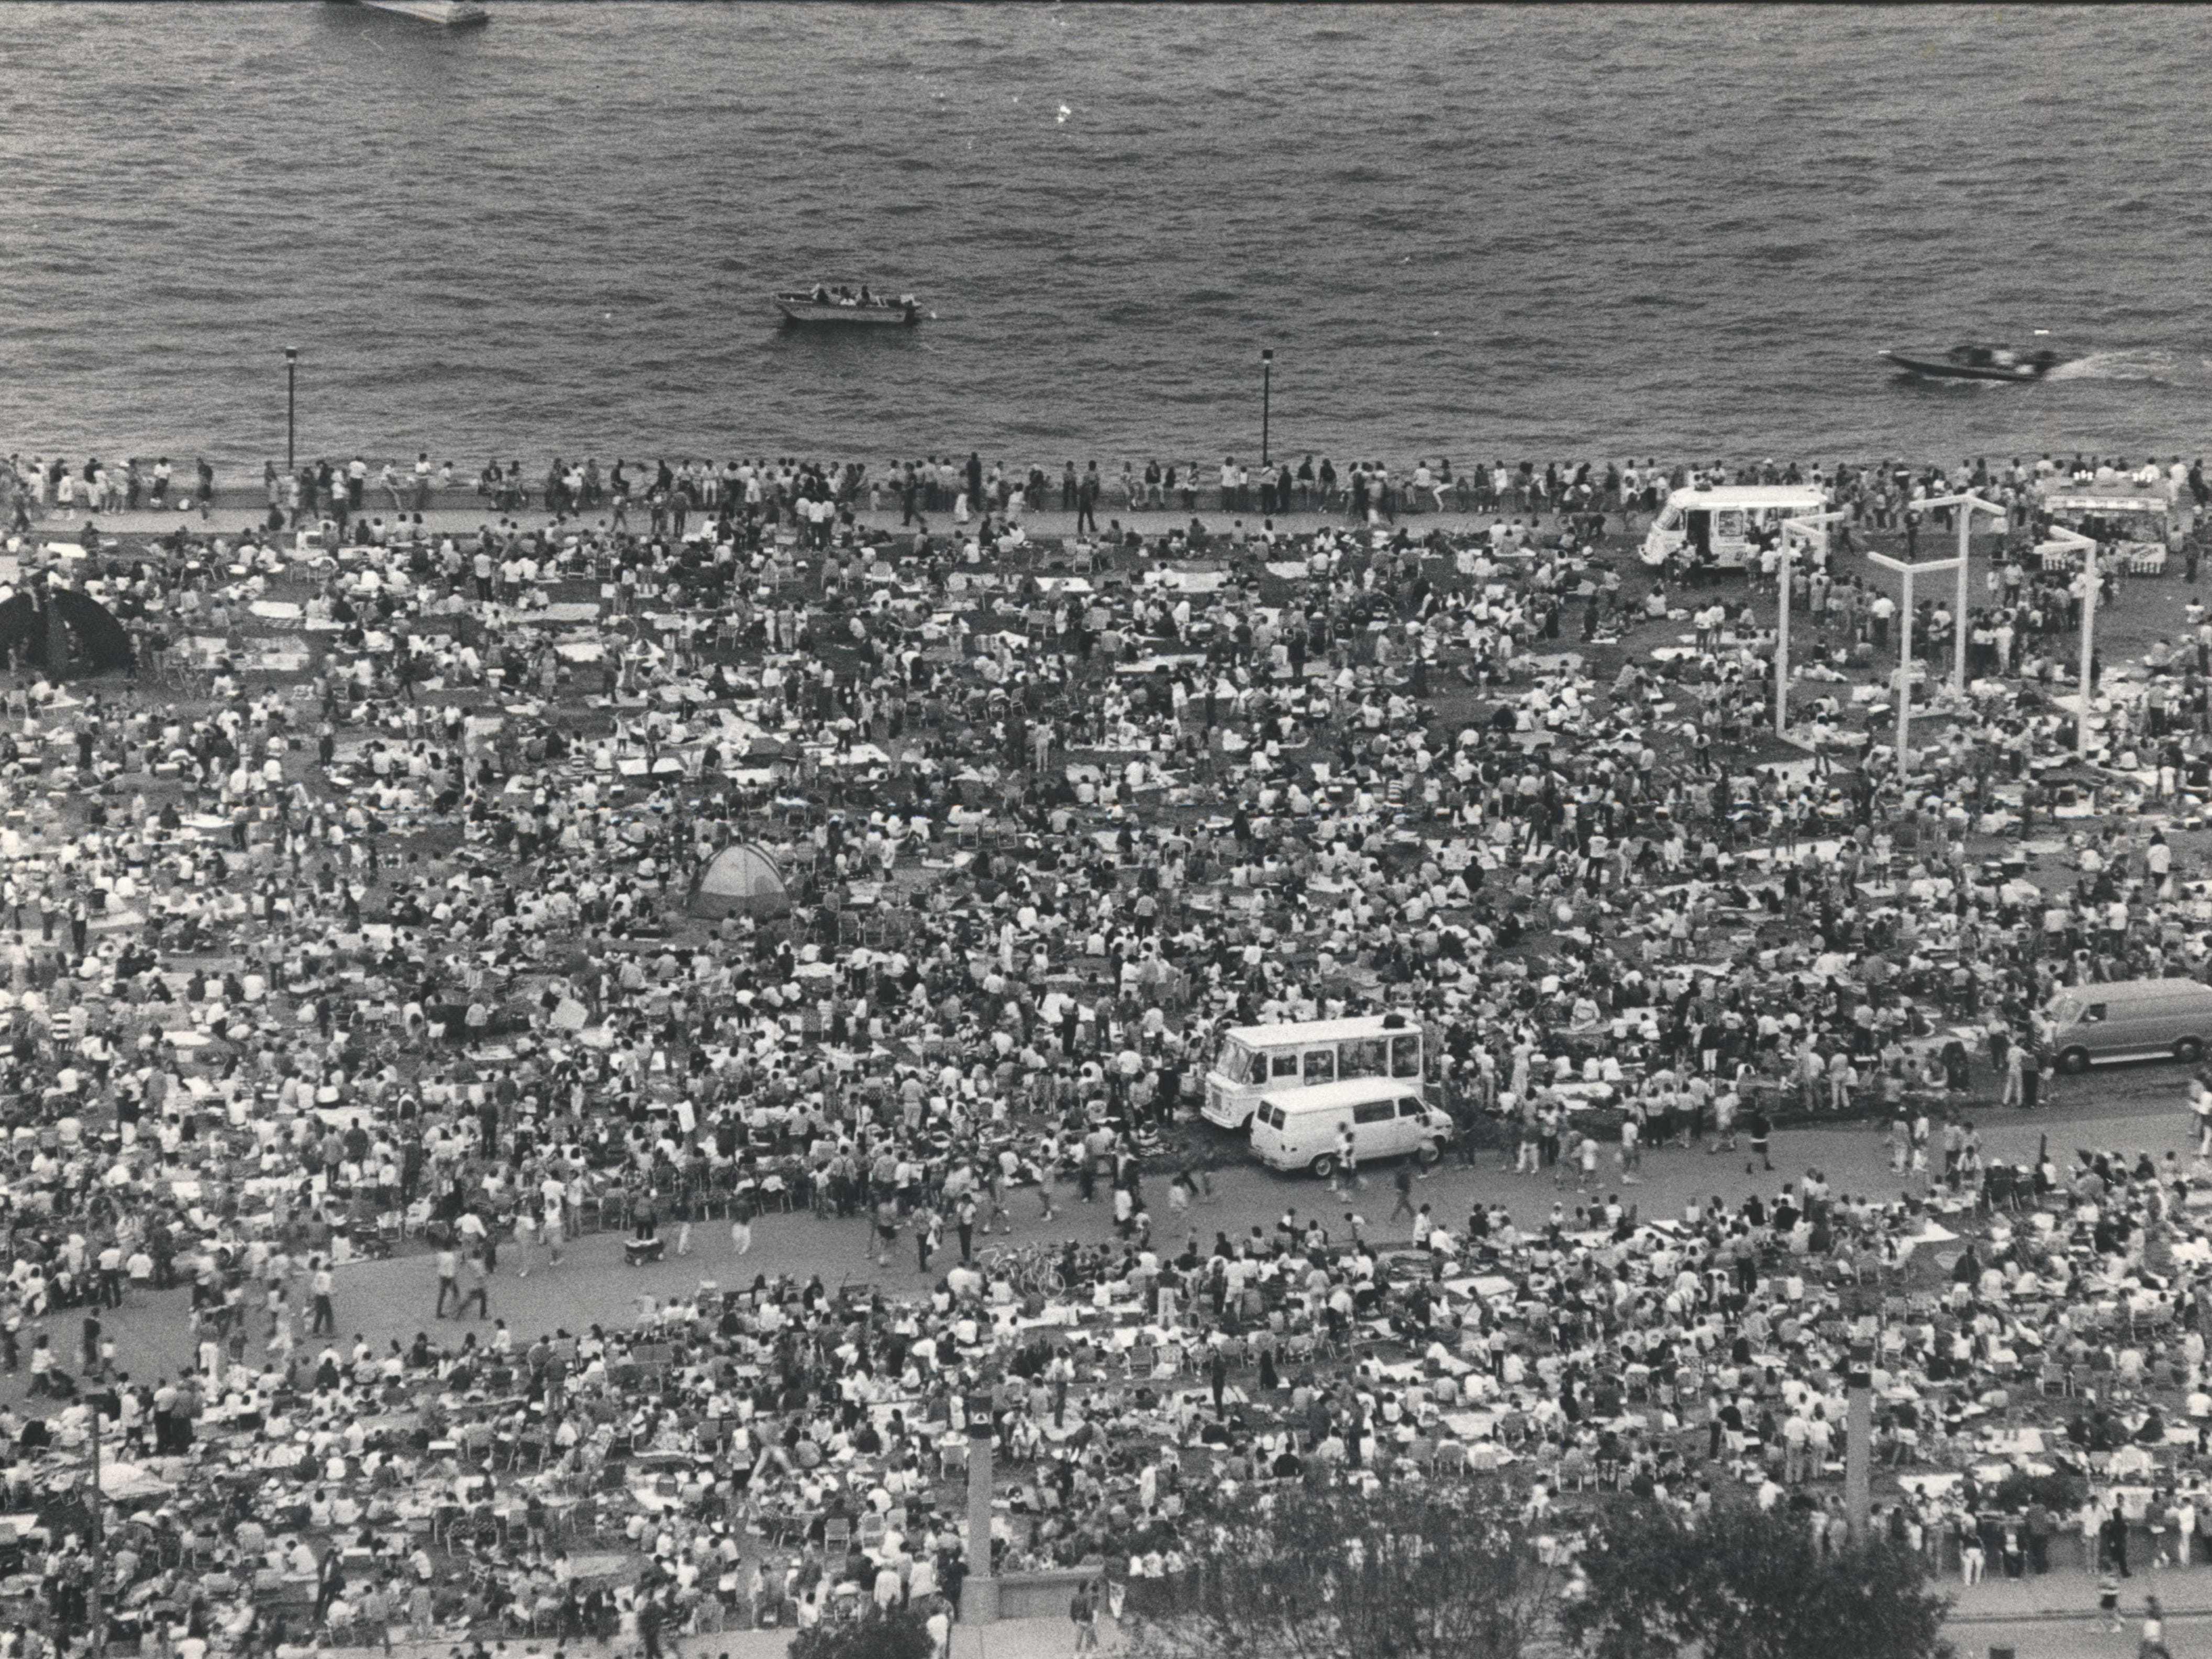 Tens of thousands of spectators fill Juneau Park, north of the War Memorial Center, before the First Wisconsin Fireworks on July 3, 1987. Police officers patrolling the area said the crowd was in a festive mood and extremely well-behaved.